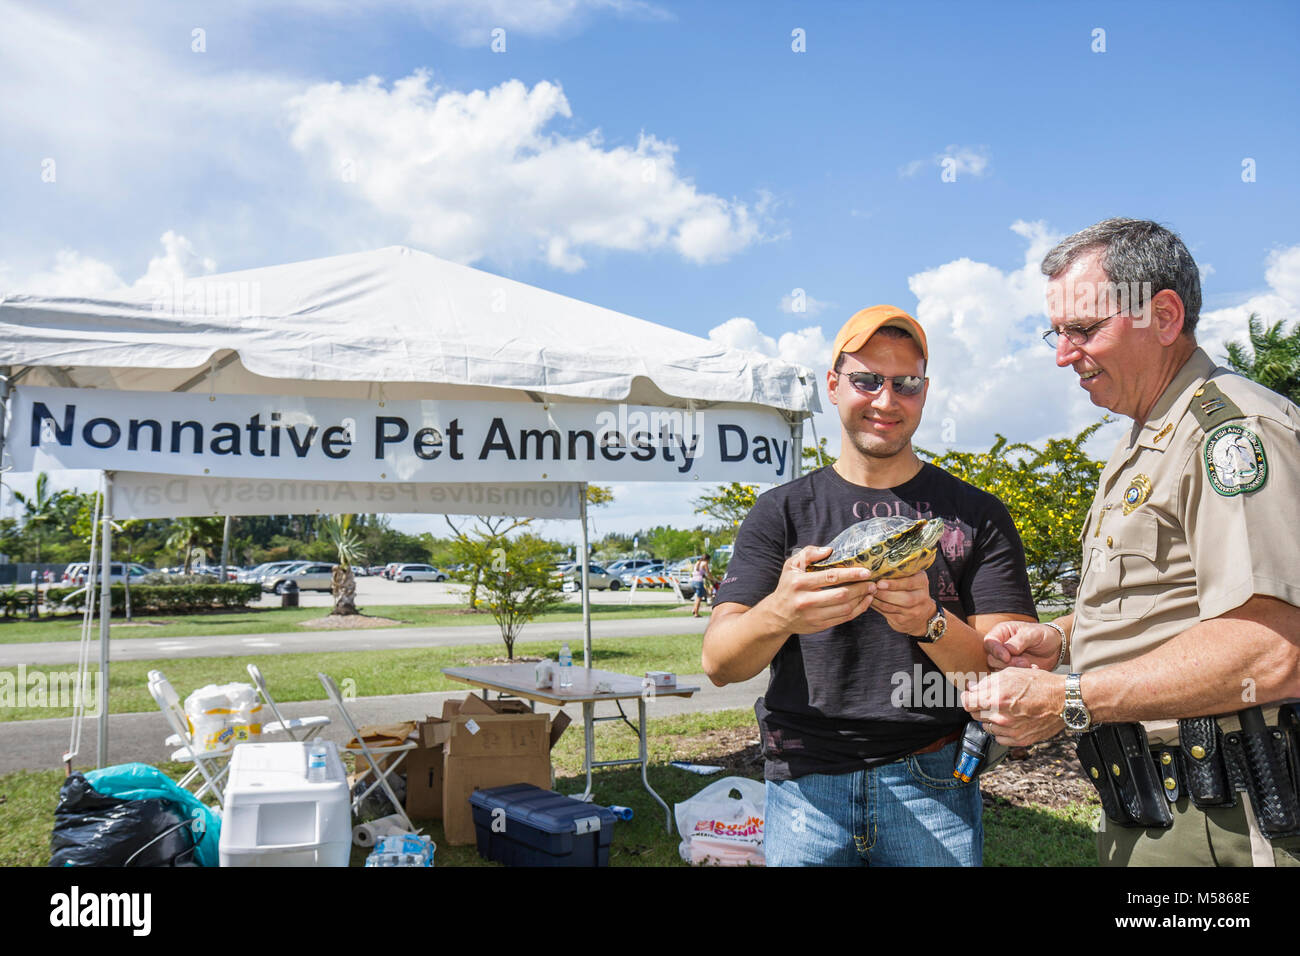 Miami Metrozoo Nonnative Pet Amnesty Day law enforcement uniformed officer tent red slider turtle - Stock Image